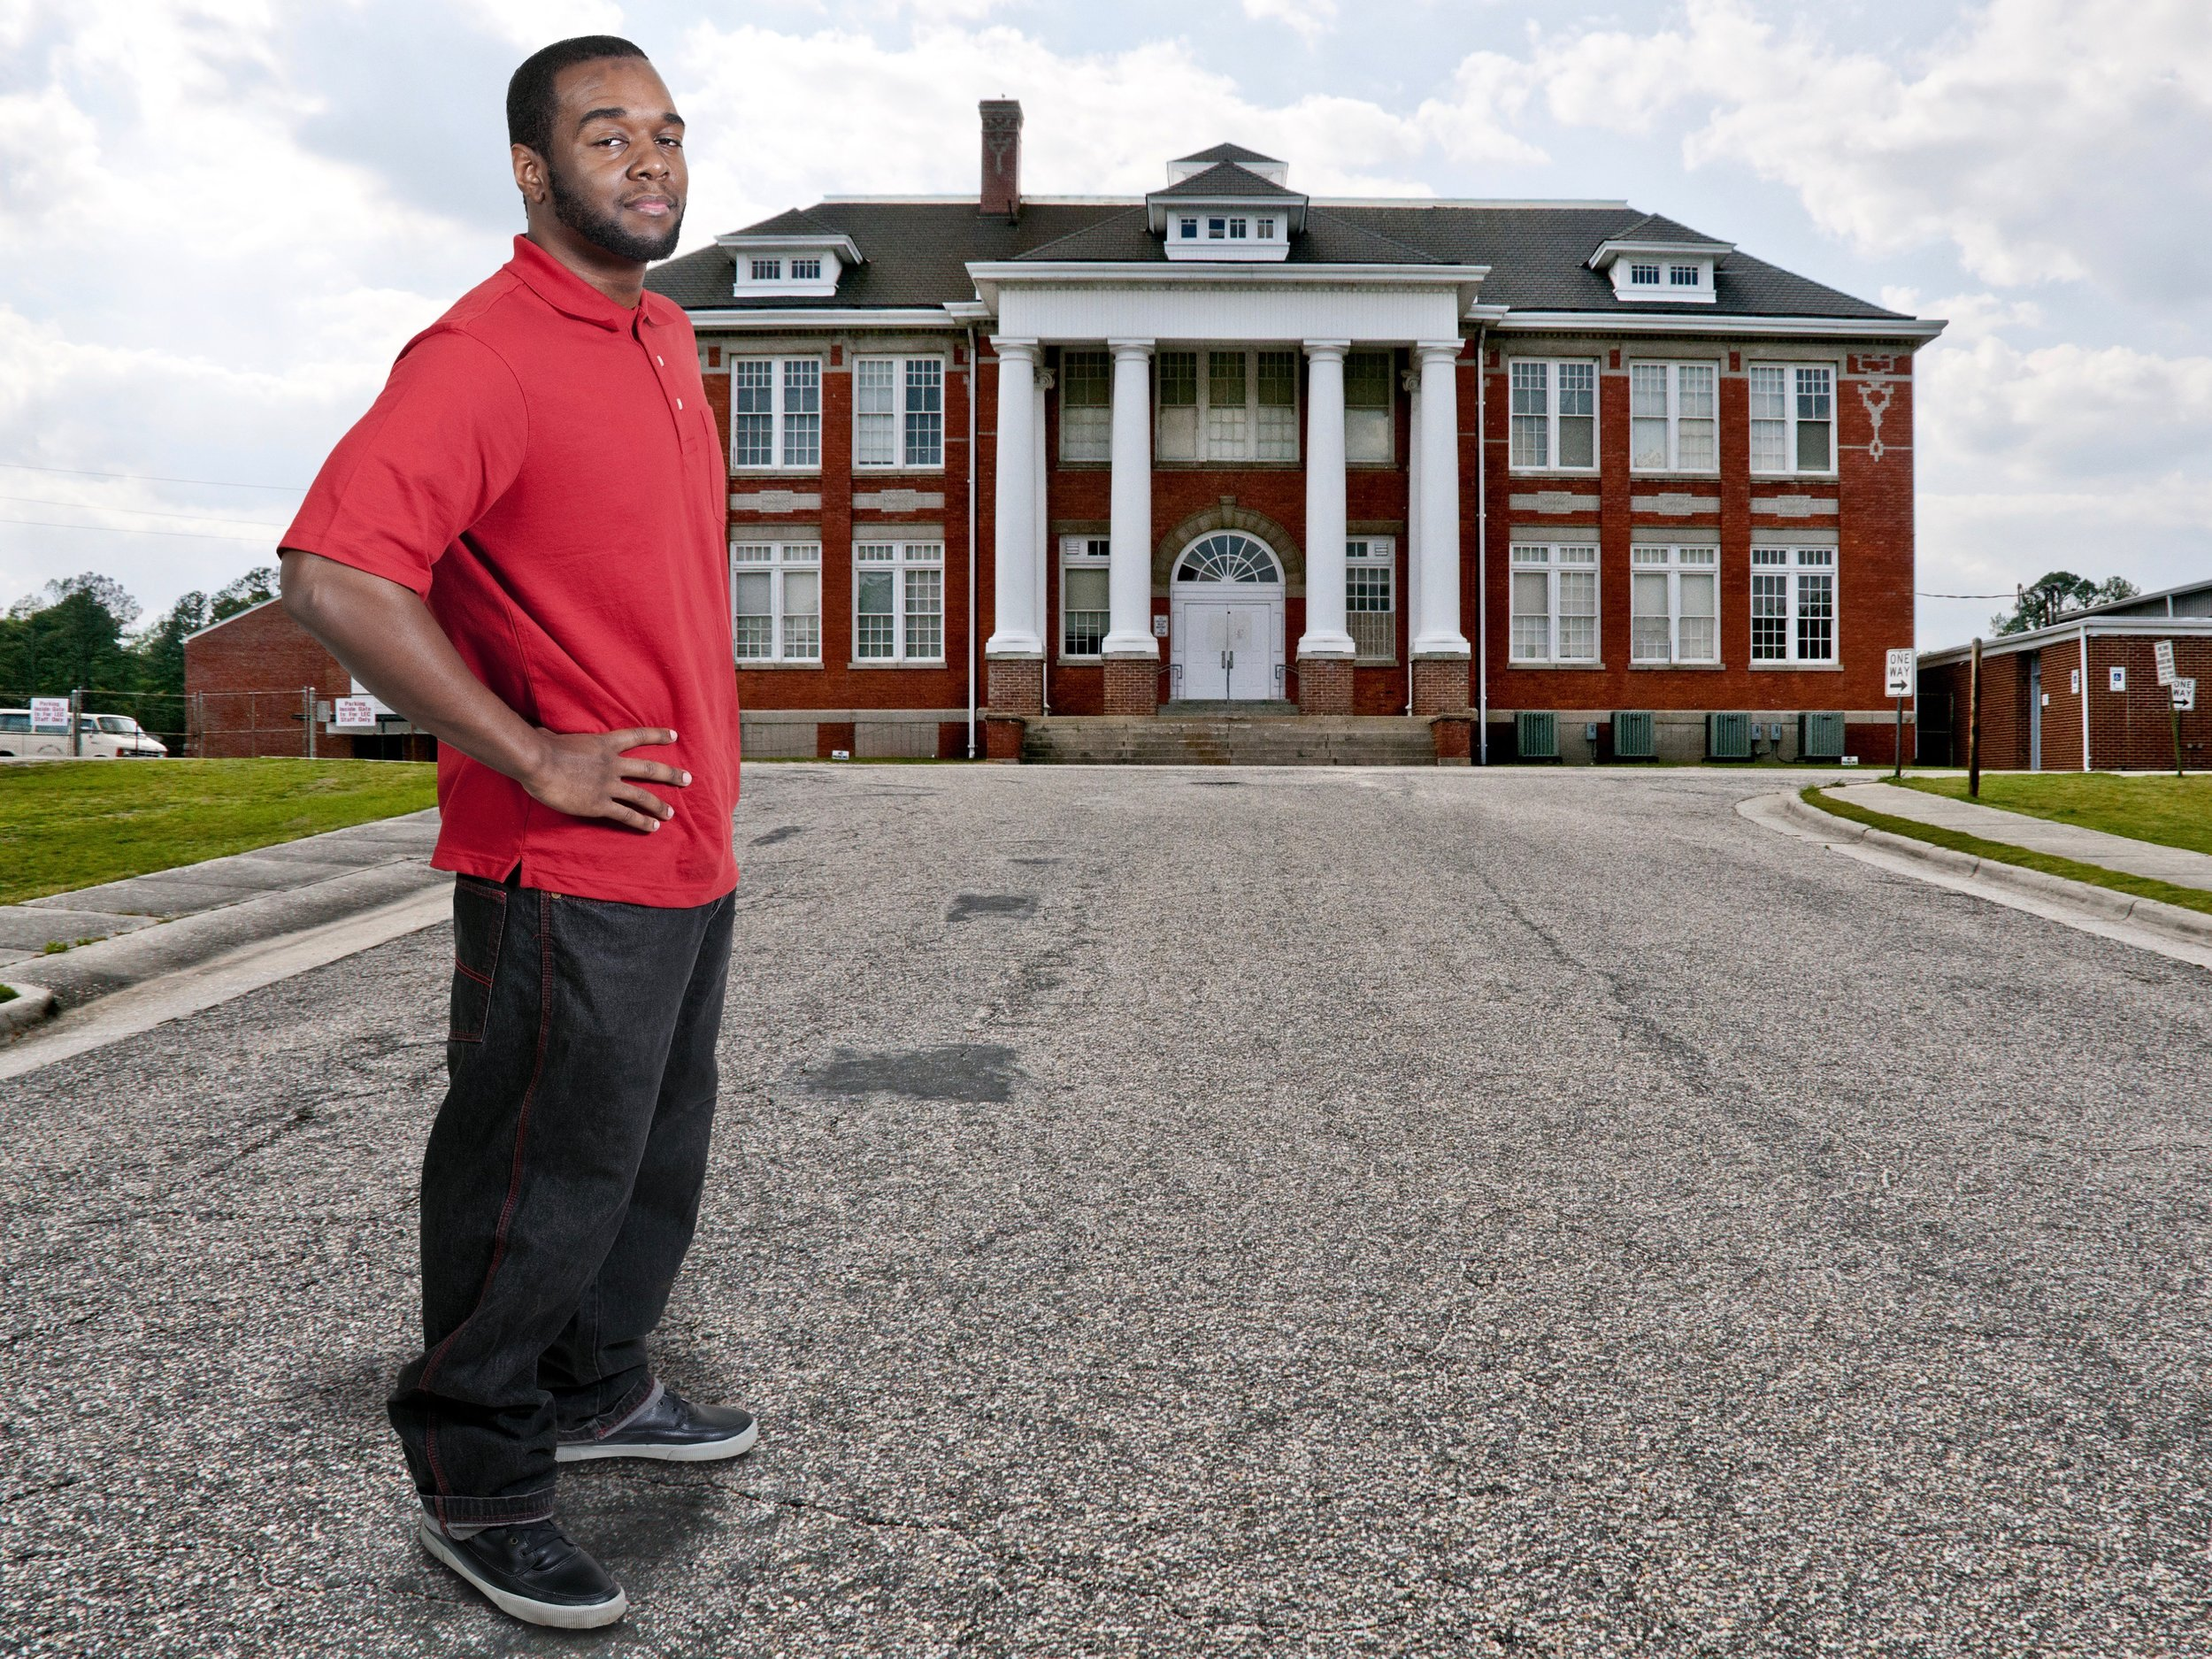 Minority students are more likely to have to borrow to attend college, and to borrow more to graduate, while on average making less than whites to repay the loans after graduation. (Shutterstock)